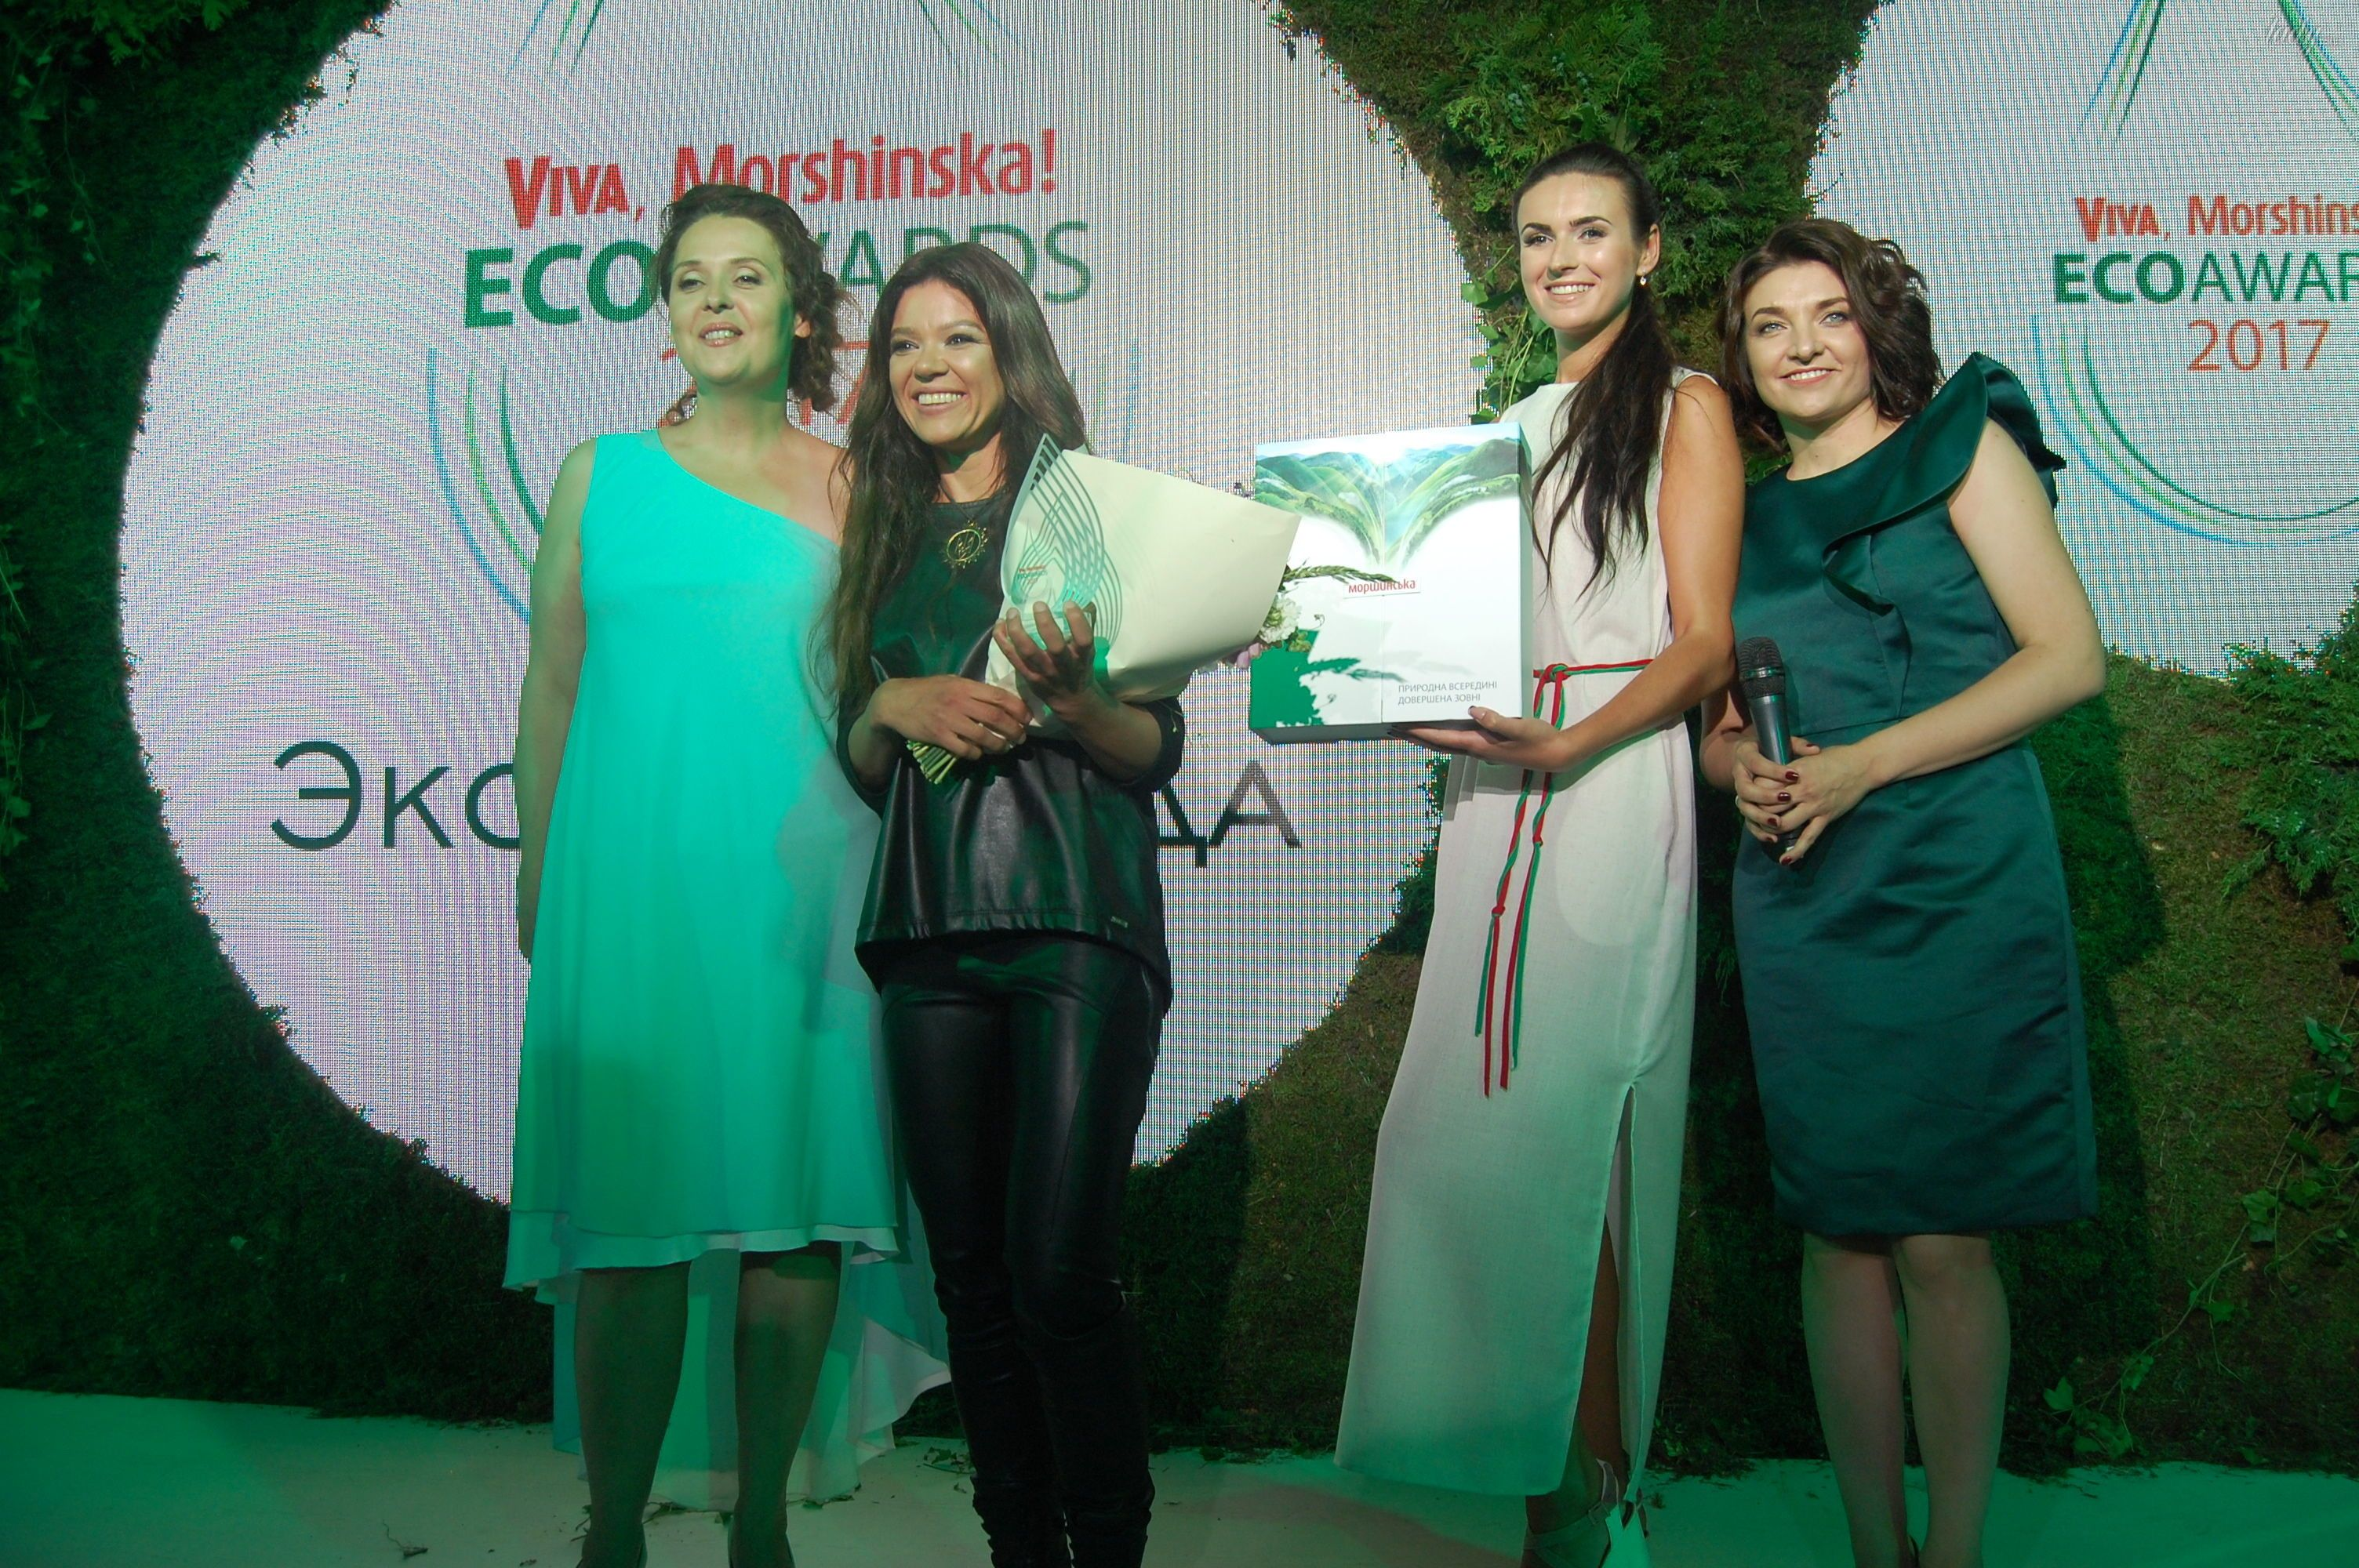 Руслана на церемонии премии Viva, Morshinska! ECO AWARDS-2017_11